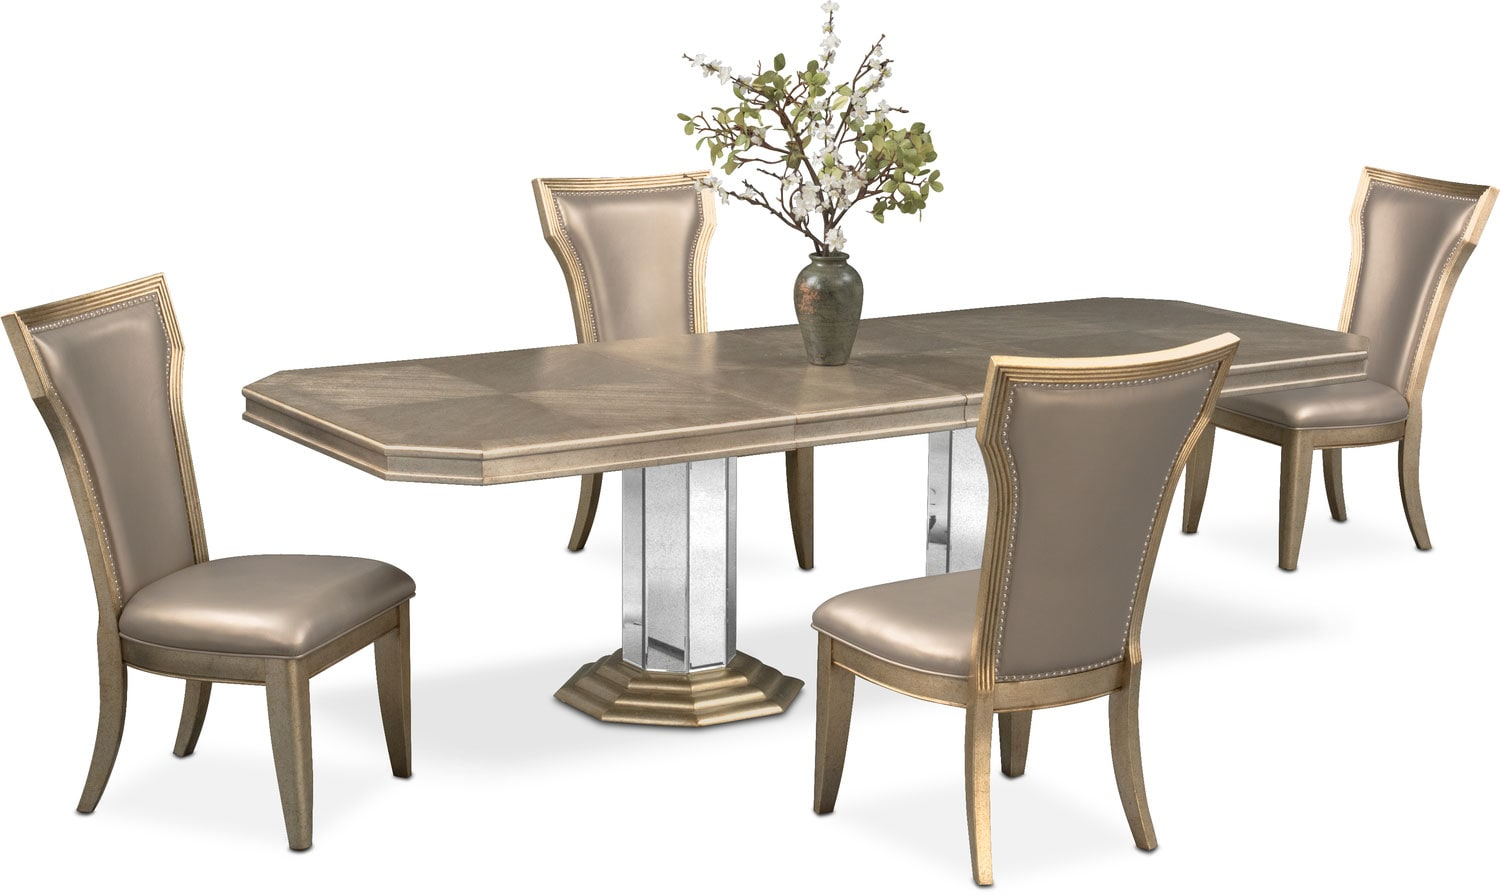 Angela Double-Pedestal Table and 4 Side Chairs - Metallic